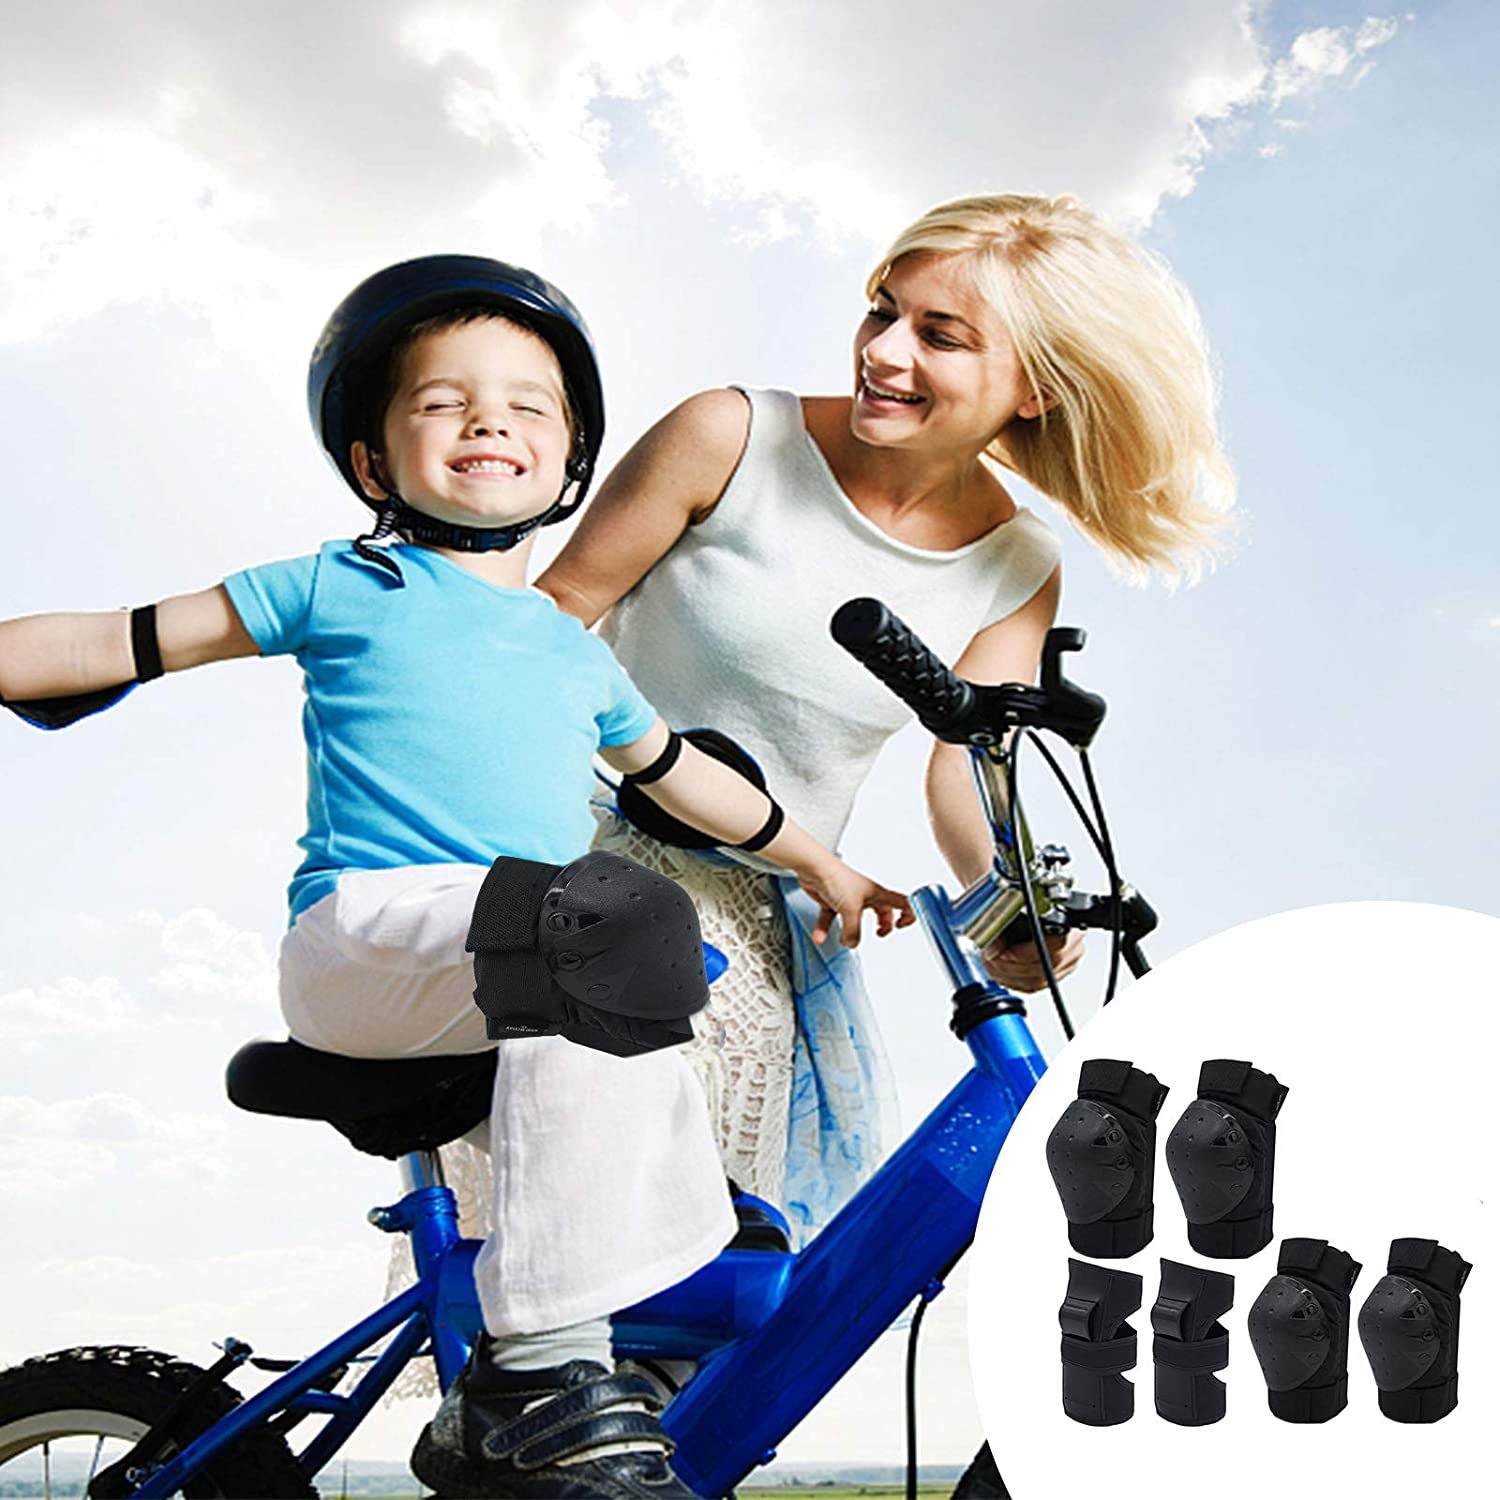 Skateboard Cycling Skating Scooter Biking Lyneun 6 in 1 Protective Gear Set with Knee Pads Elbow PadsWrist Pads for Children//Adults Rollerblading